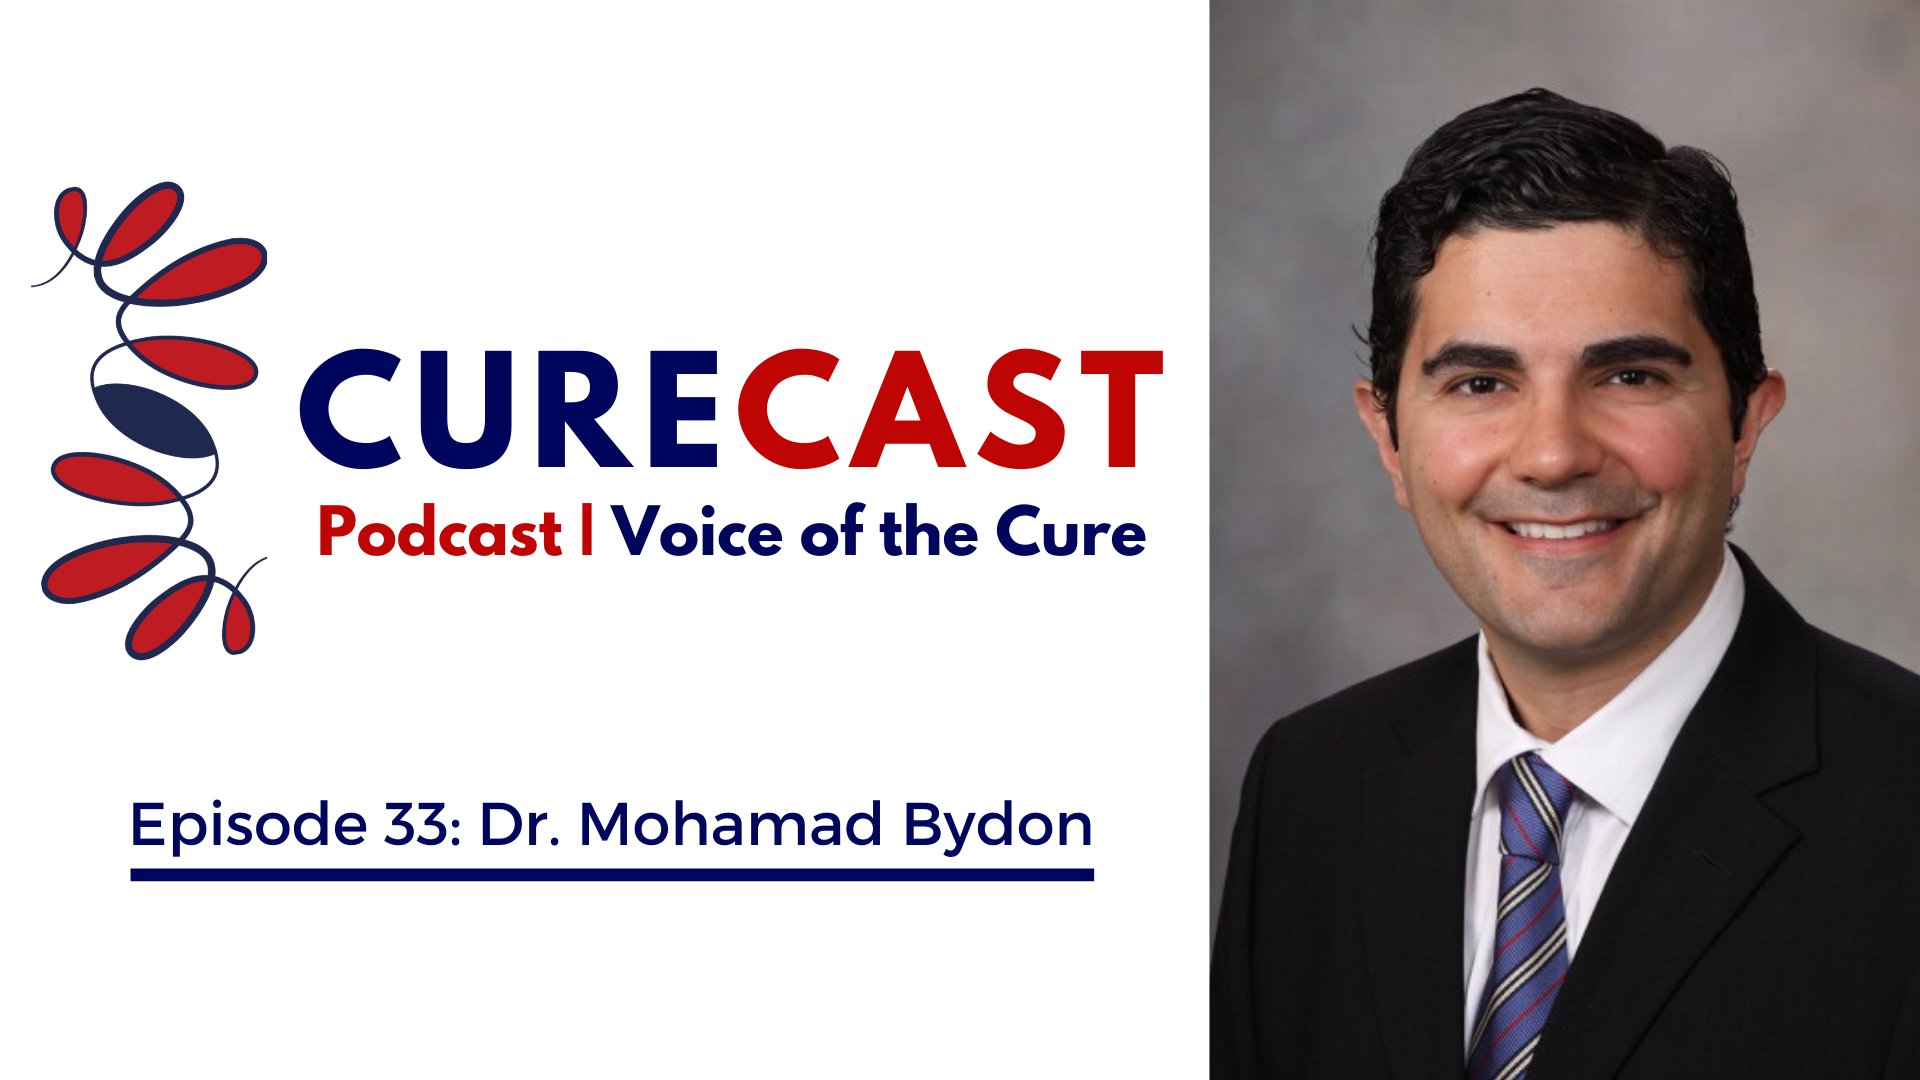 CureCast Episode 33: An Interview with Dr. Mohamad Bydon of the Mayo Clinic